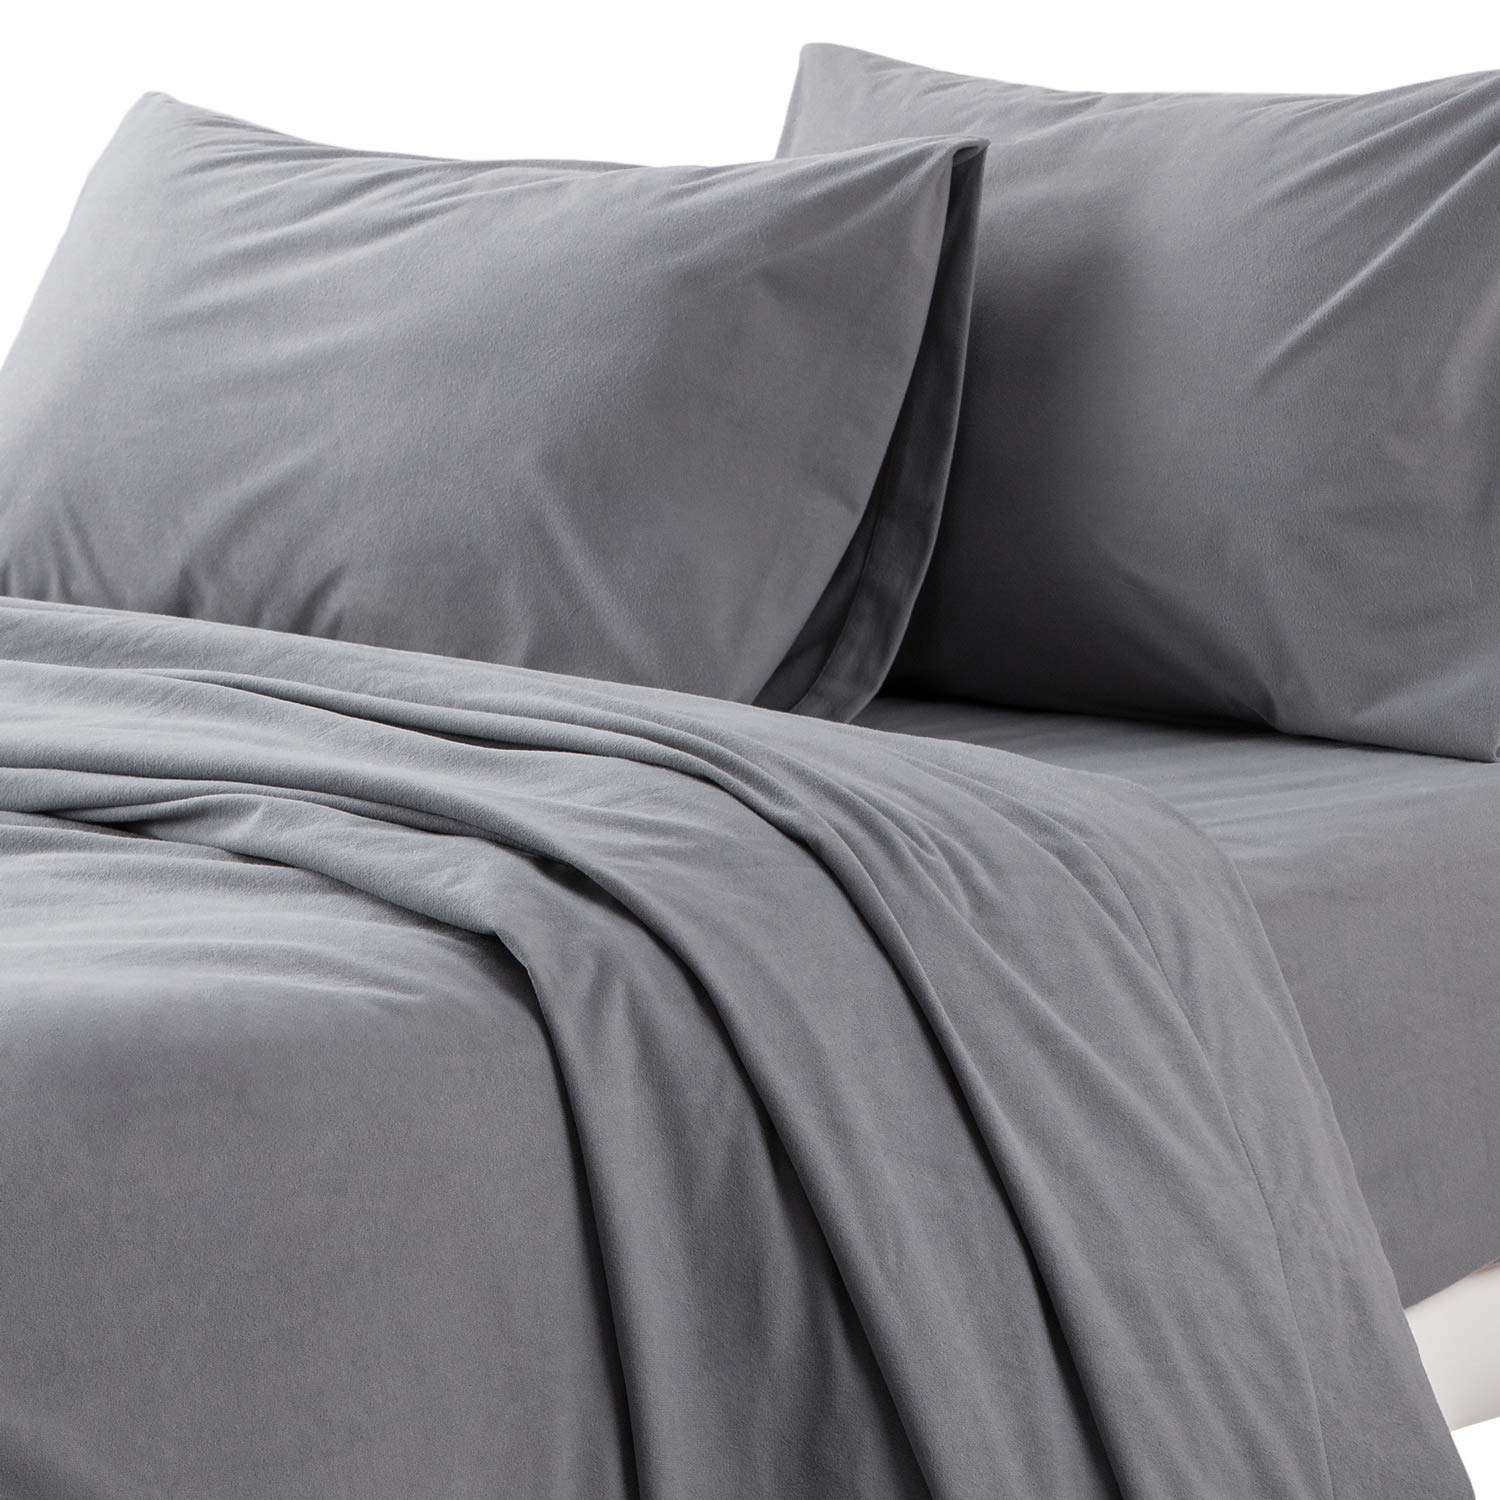 Bedsure Gram Fuzzy Surface Sheets Deep Fitted Gray Queen